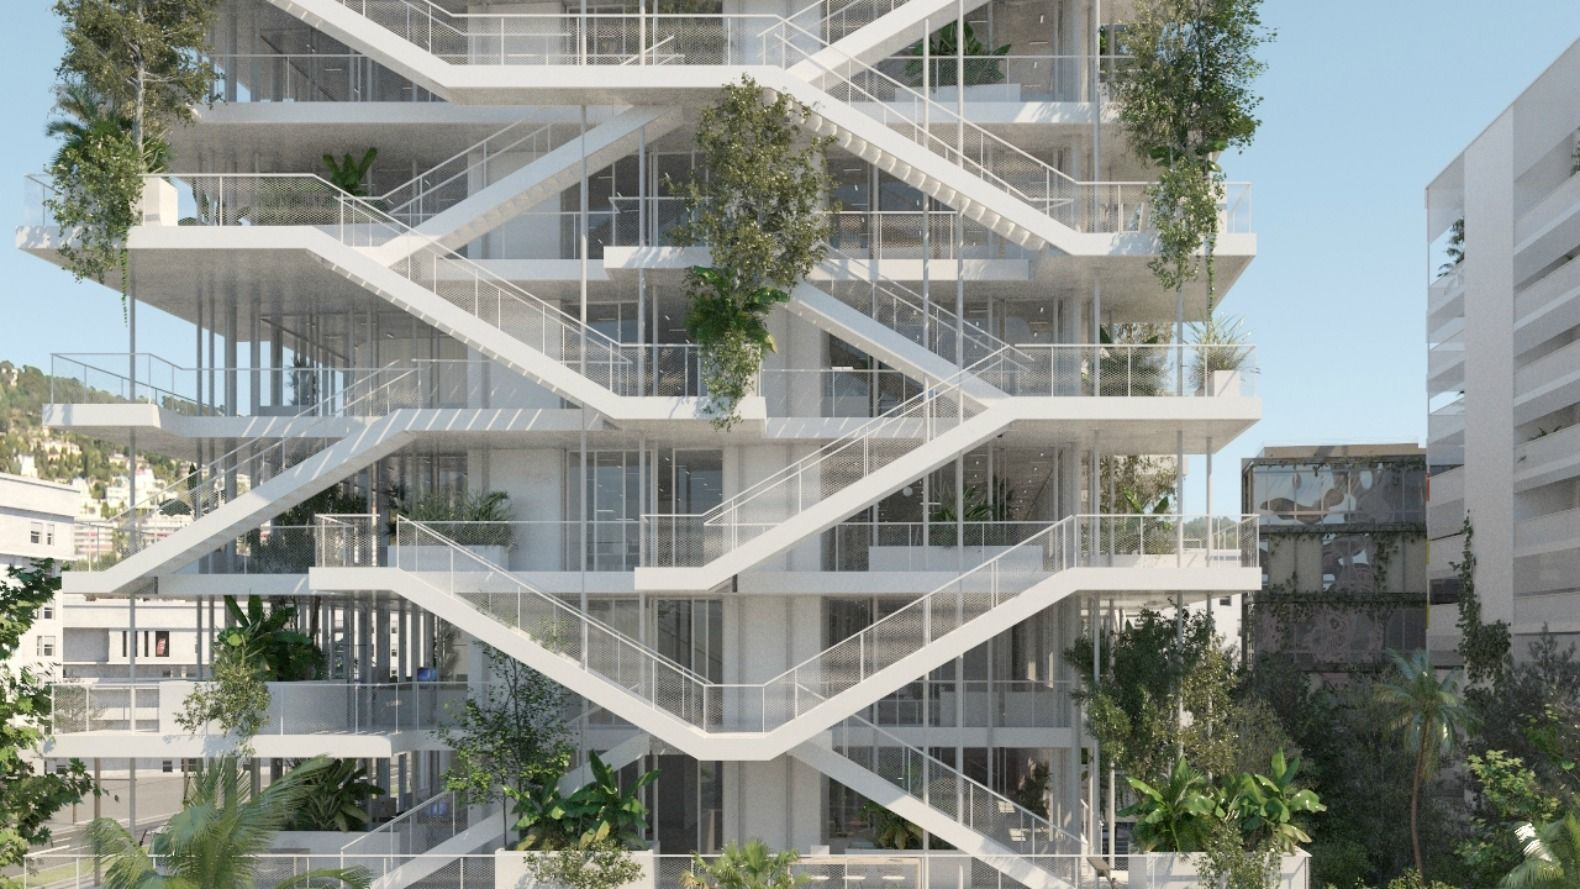 french architectural firm nicolas laisn associs designed the open concept bio climatic office building to have a beautiful green layered outer facade